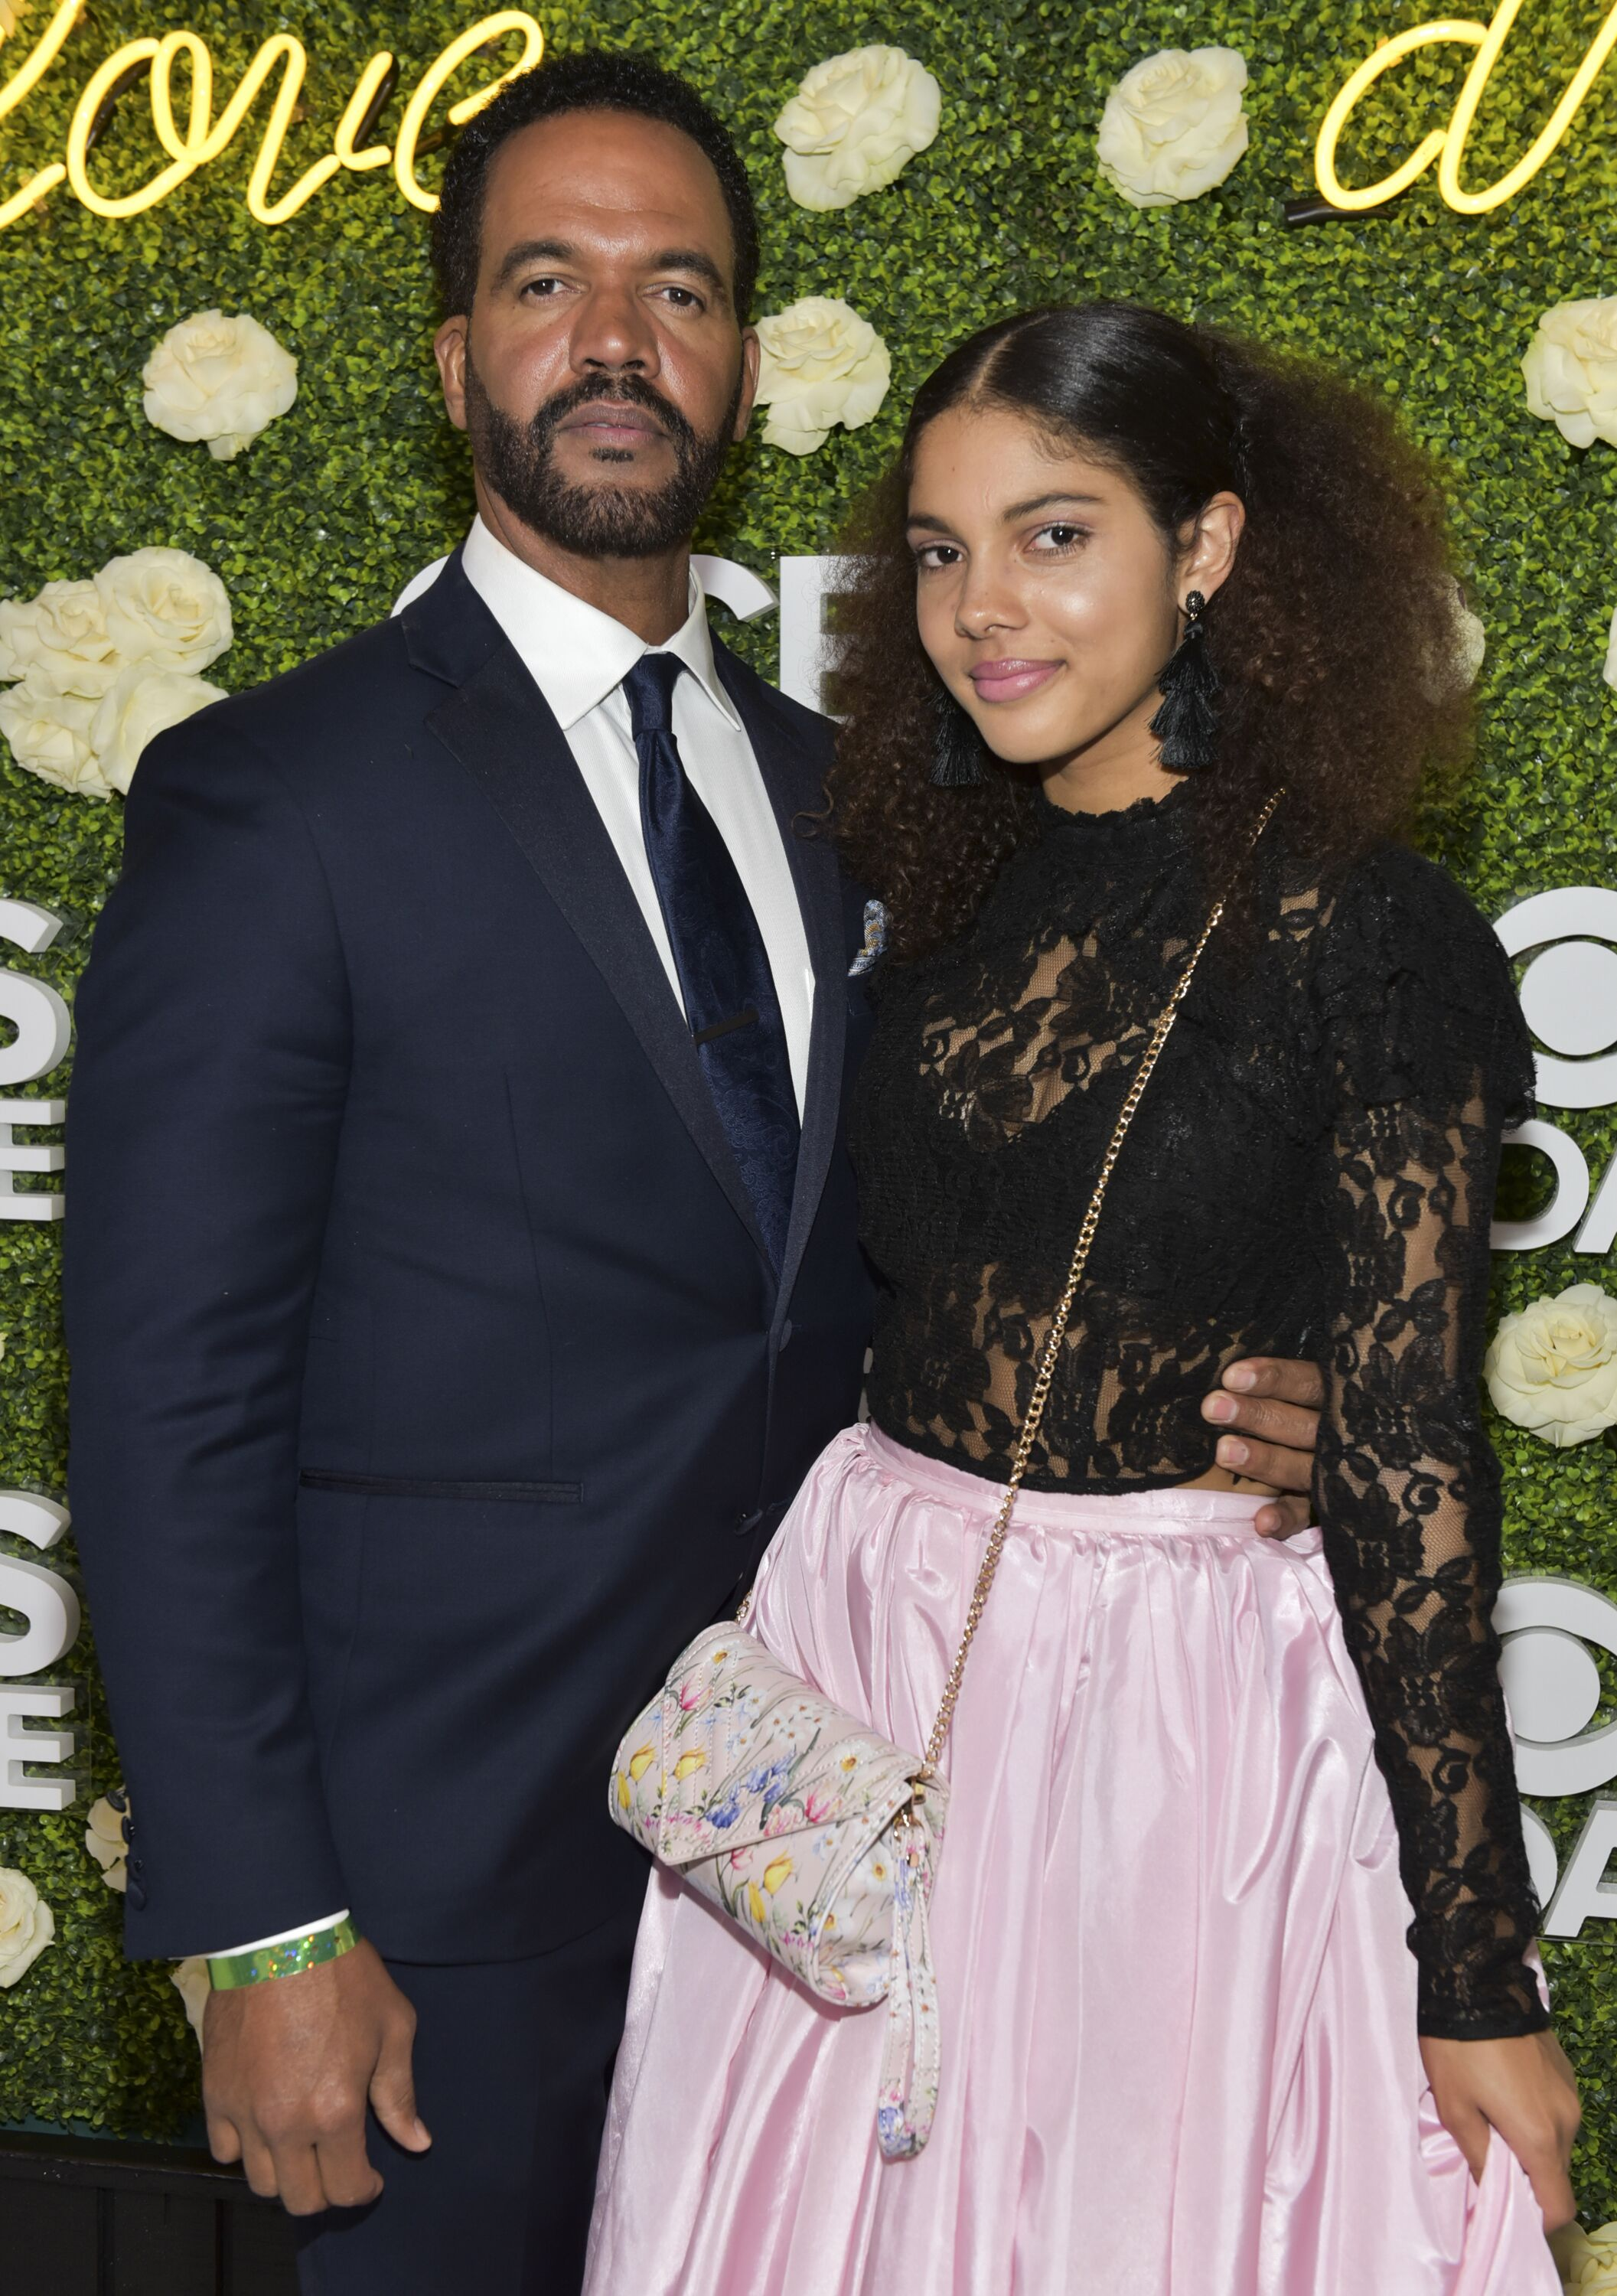 Kristoff St. John and his daughter Paris St. John | Photo: Getty Images